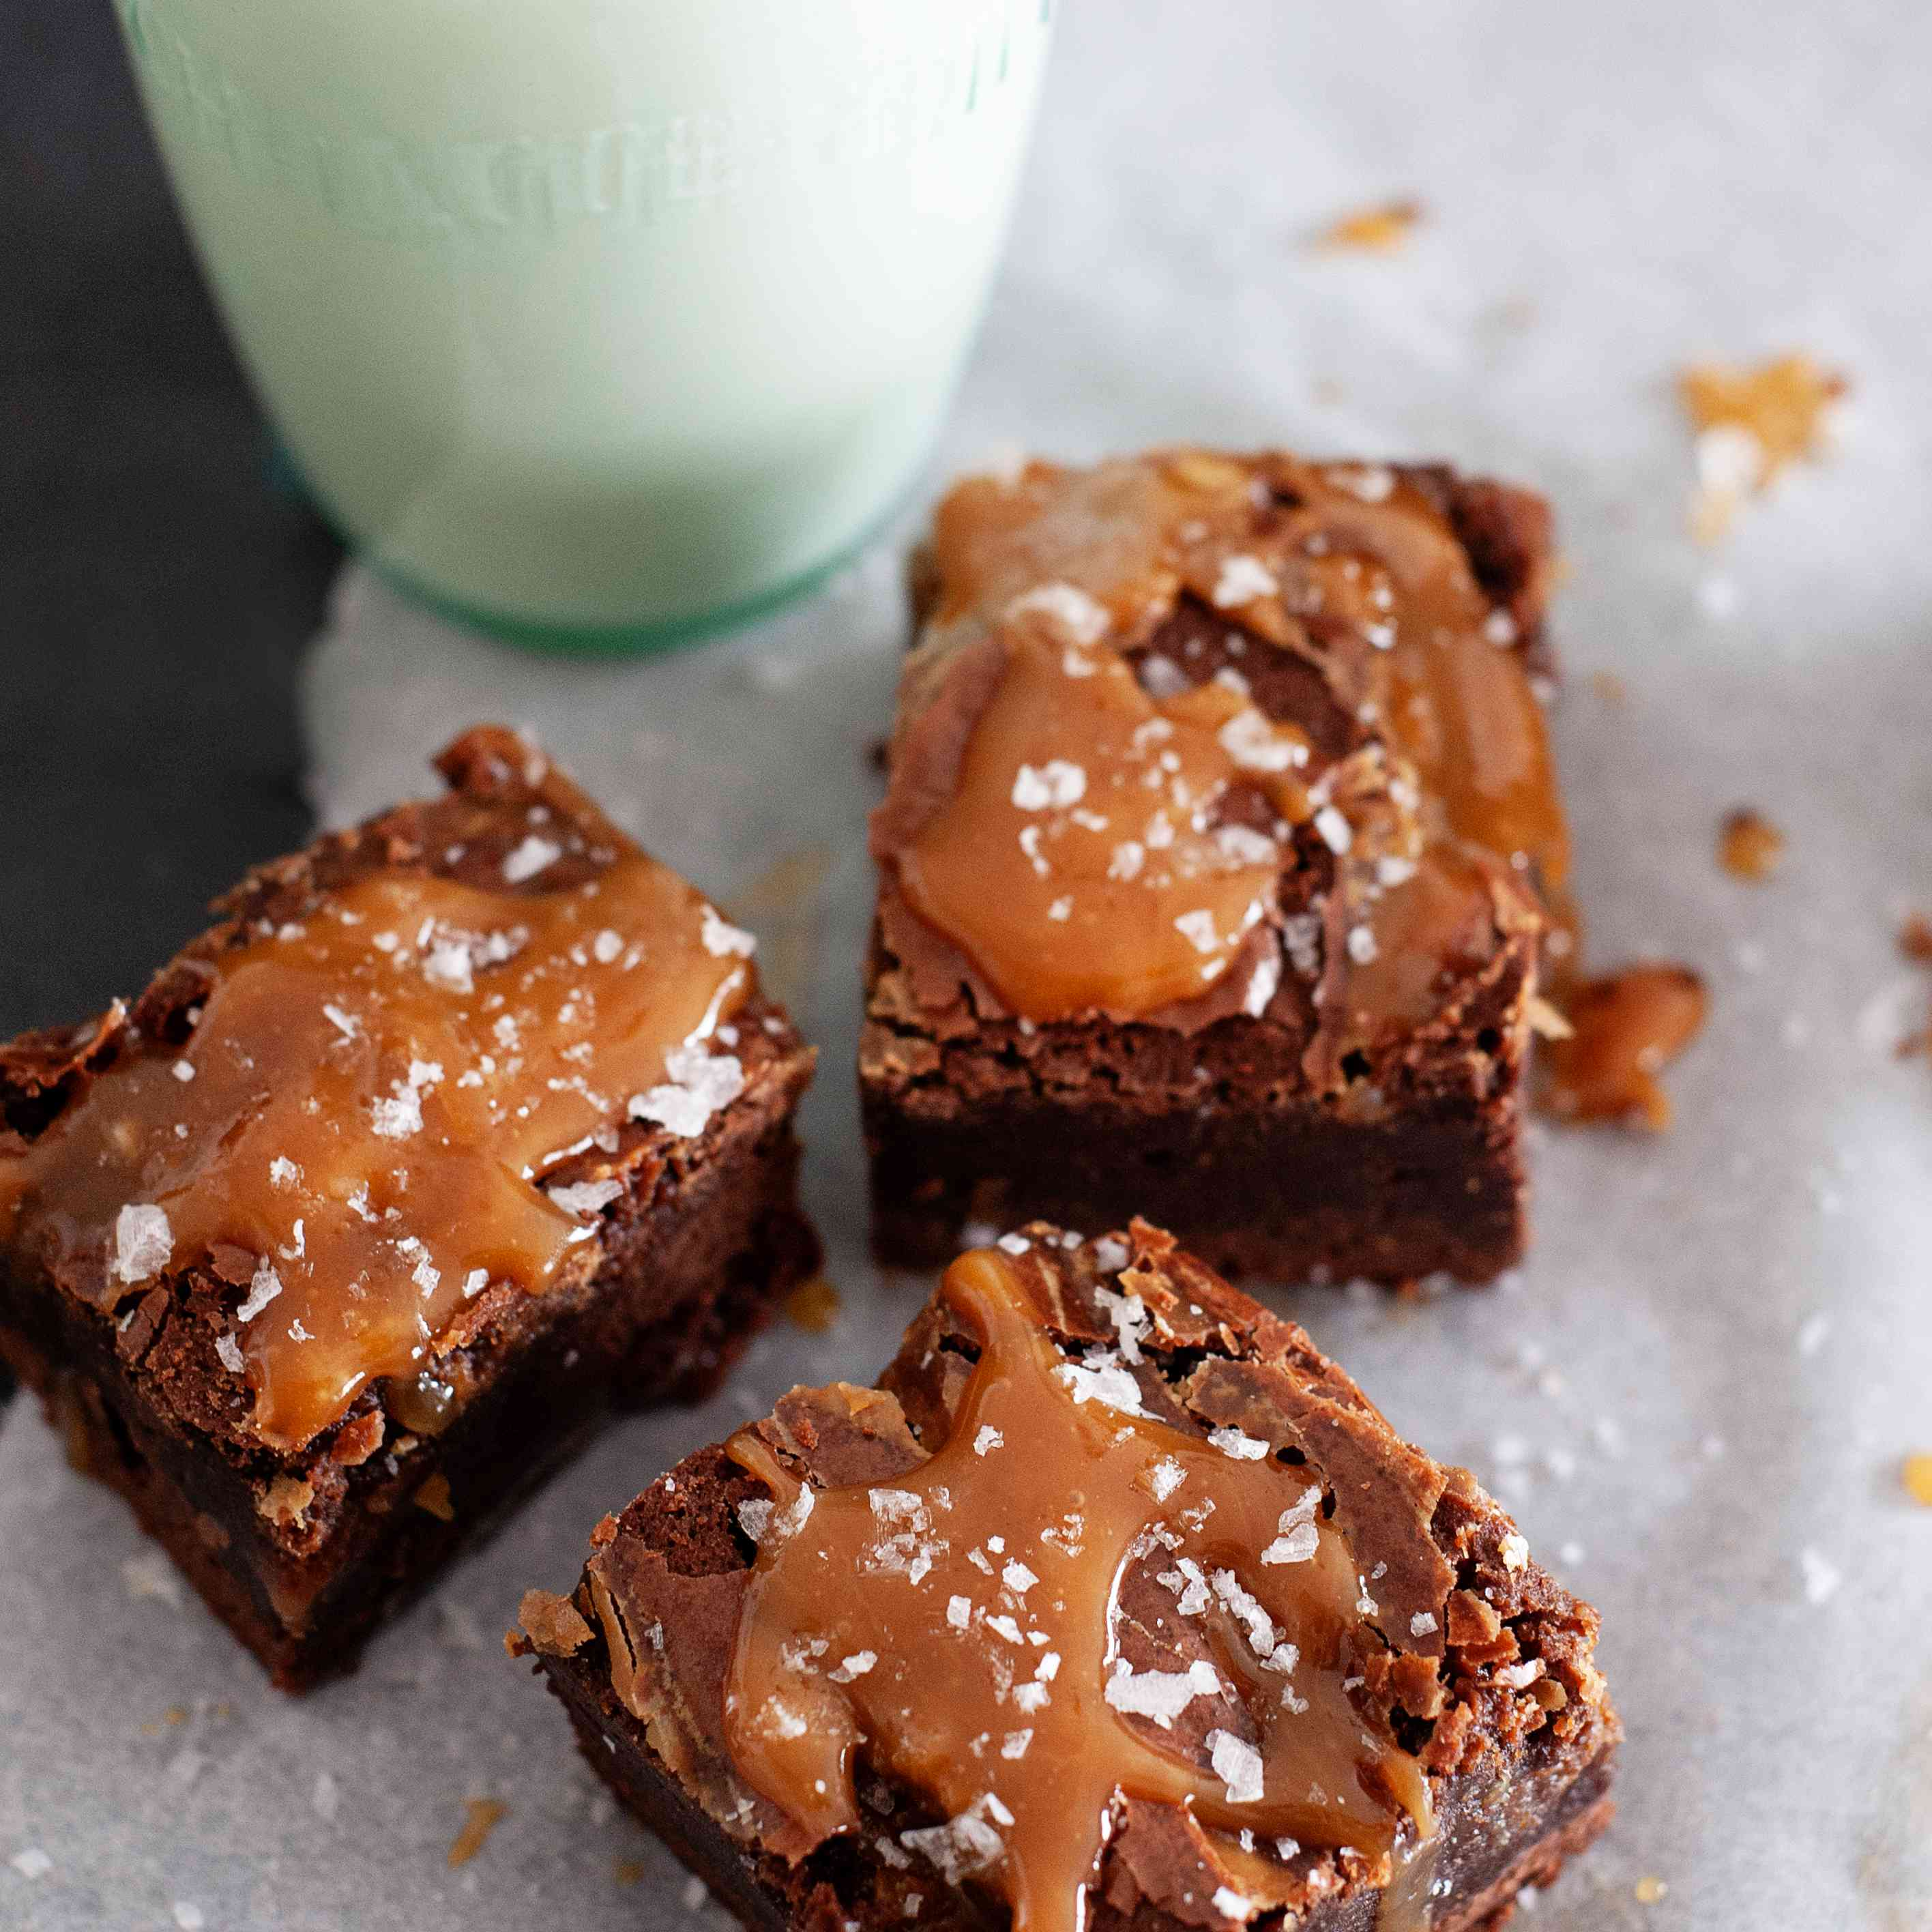 Fudgy Caramel Swirl Brownies with a glass of milk